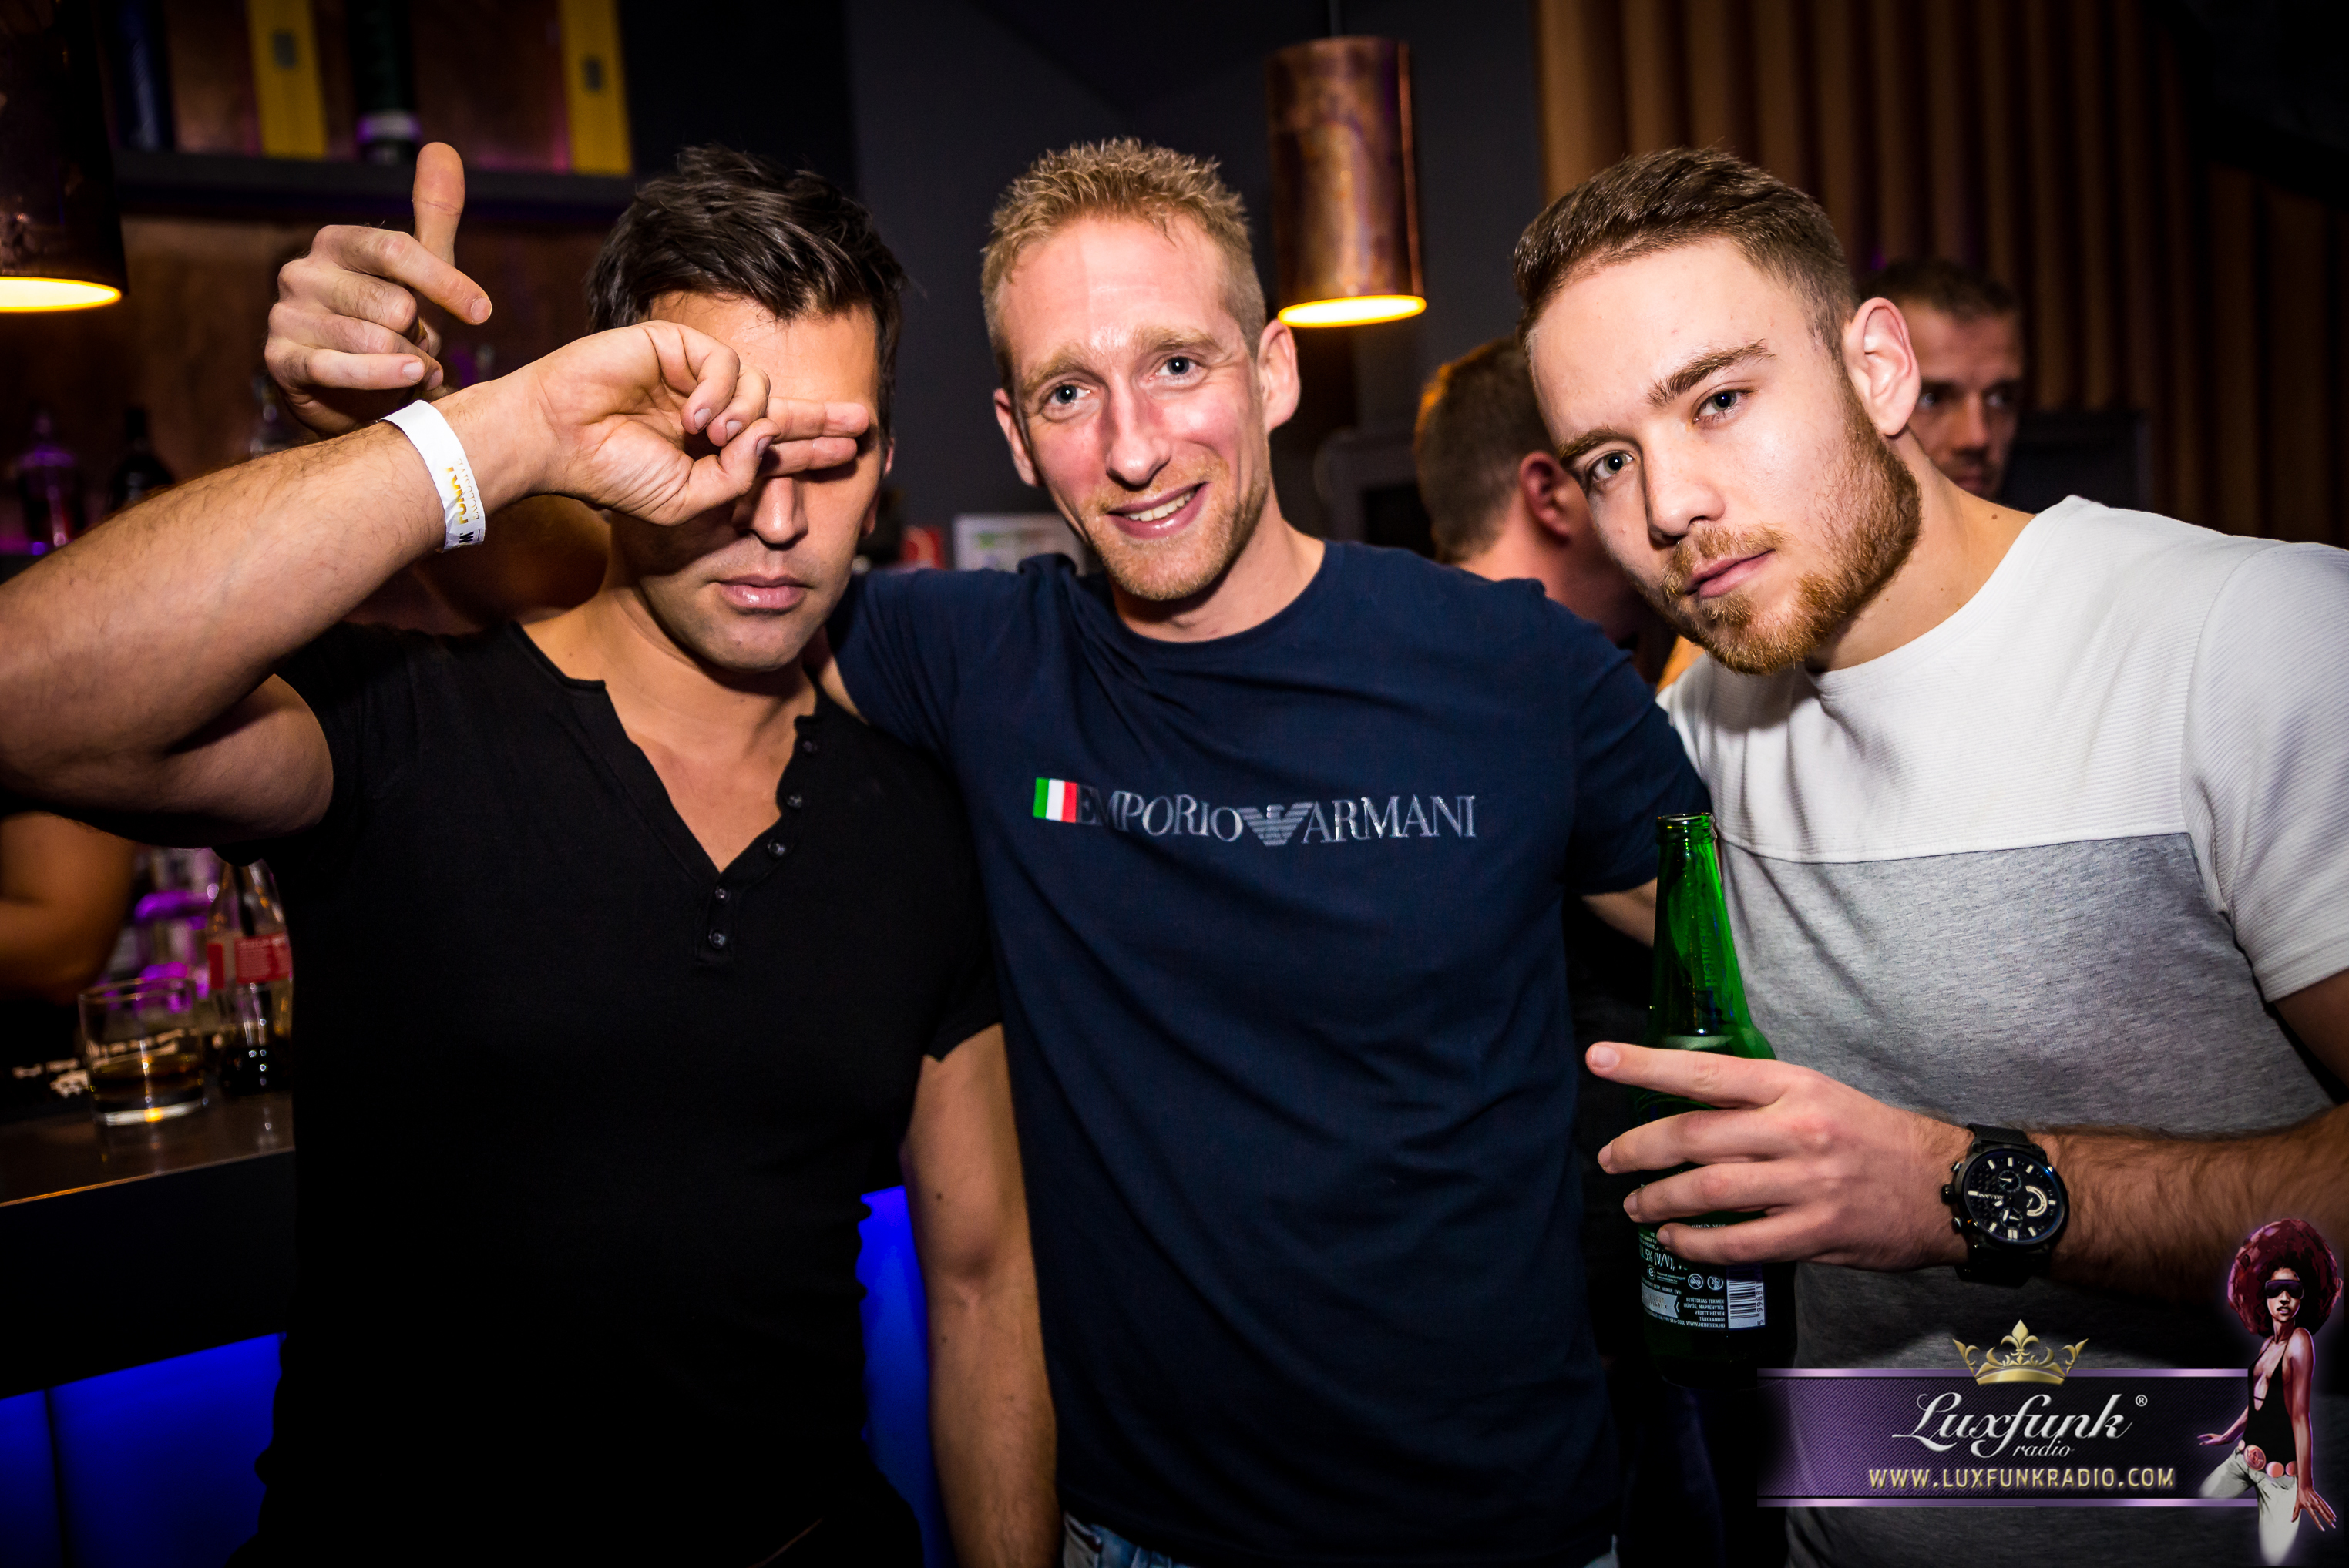 luxfunk-radio-funky-party-20191108-lock-budapest-1335